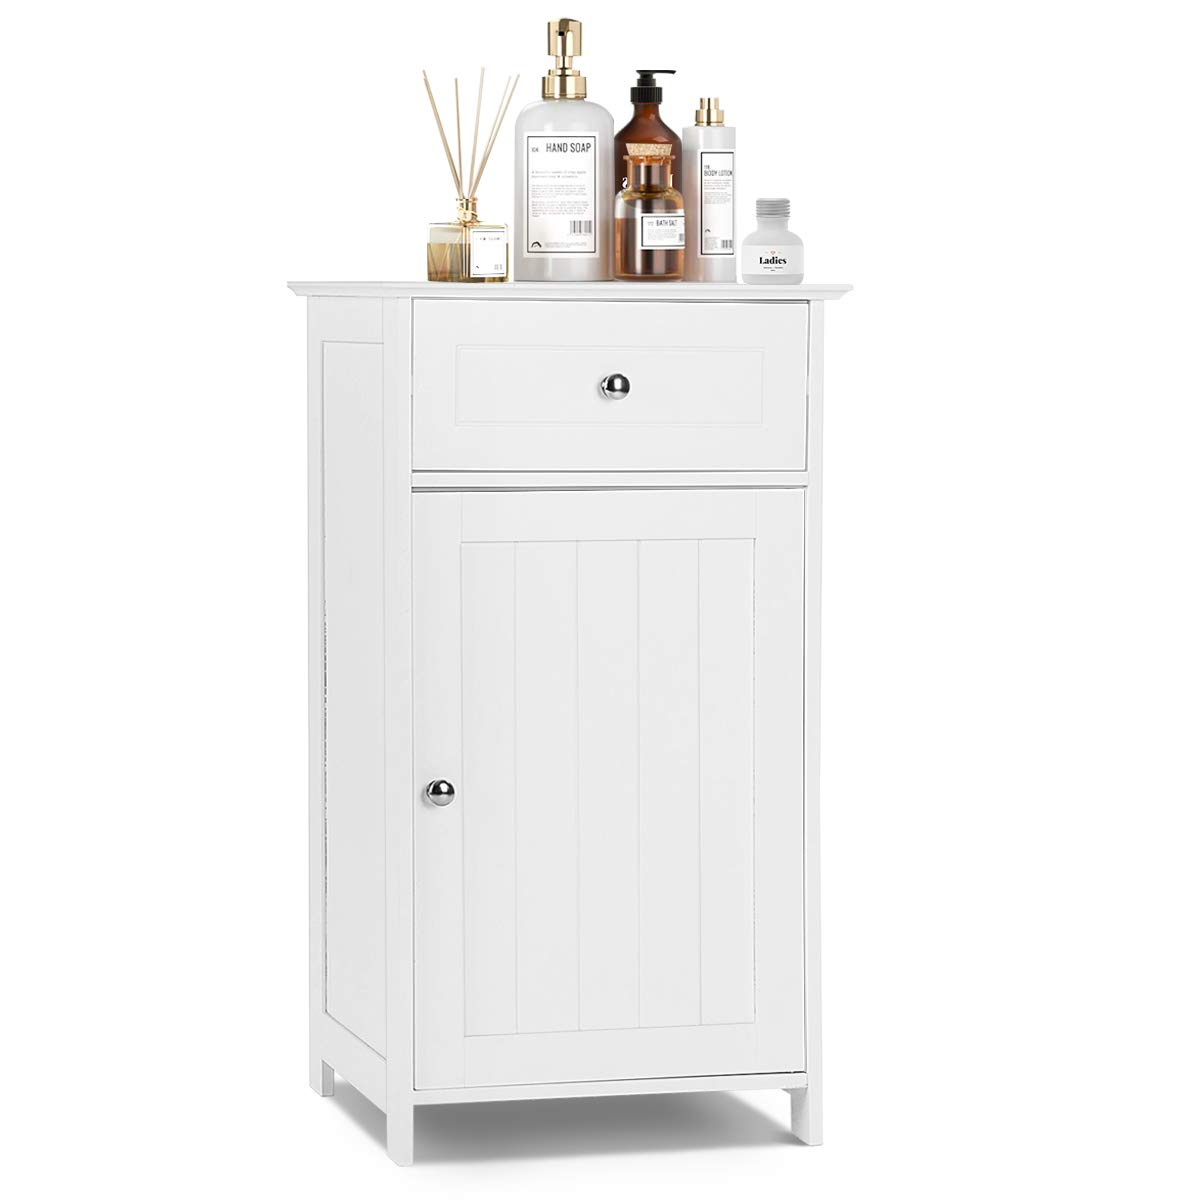 Tangkula Bathroom Floor Storage Cabinet, Home Living Room Bedroom Sturdy Wooden Modern Side Cabinet Organizer (30'' with Door & Drawer) by Tangkula